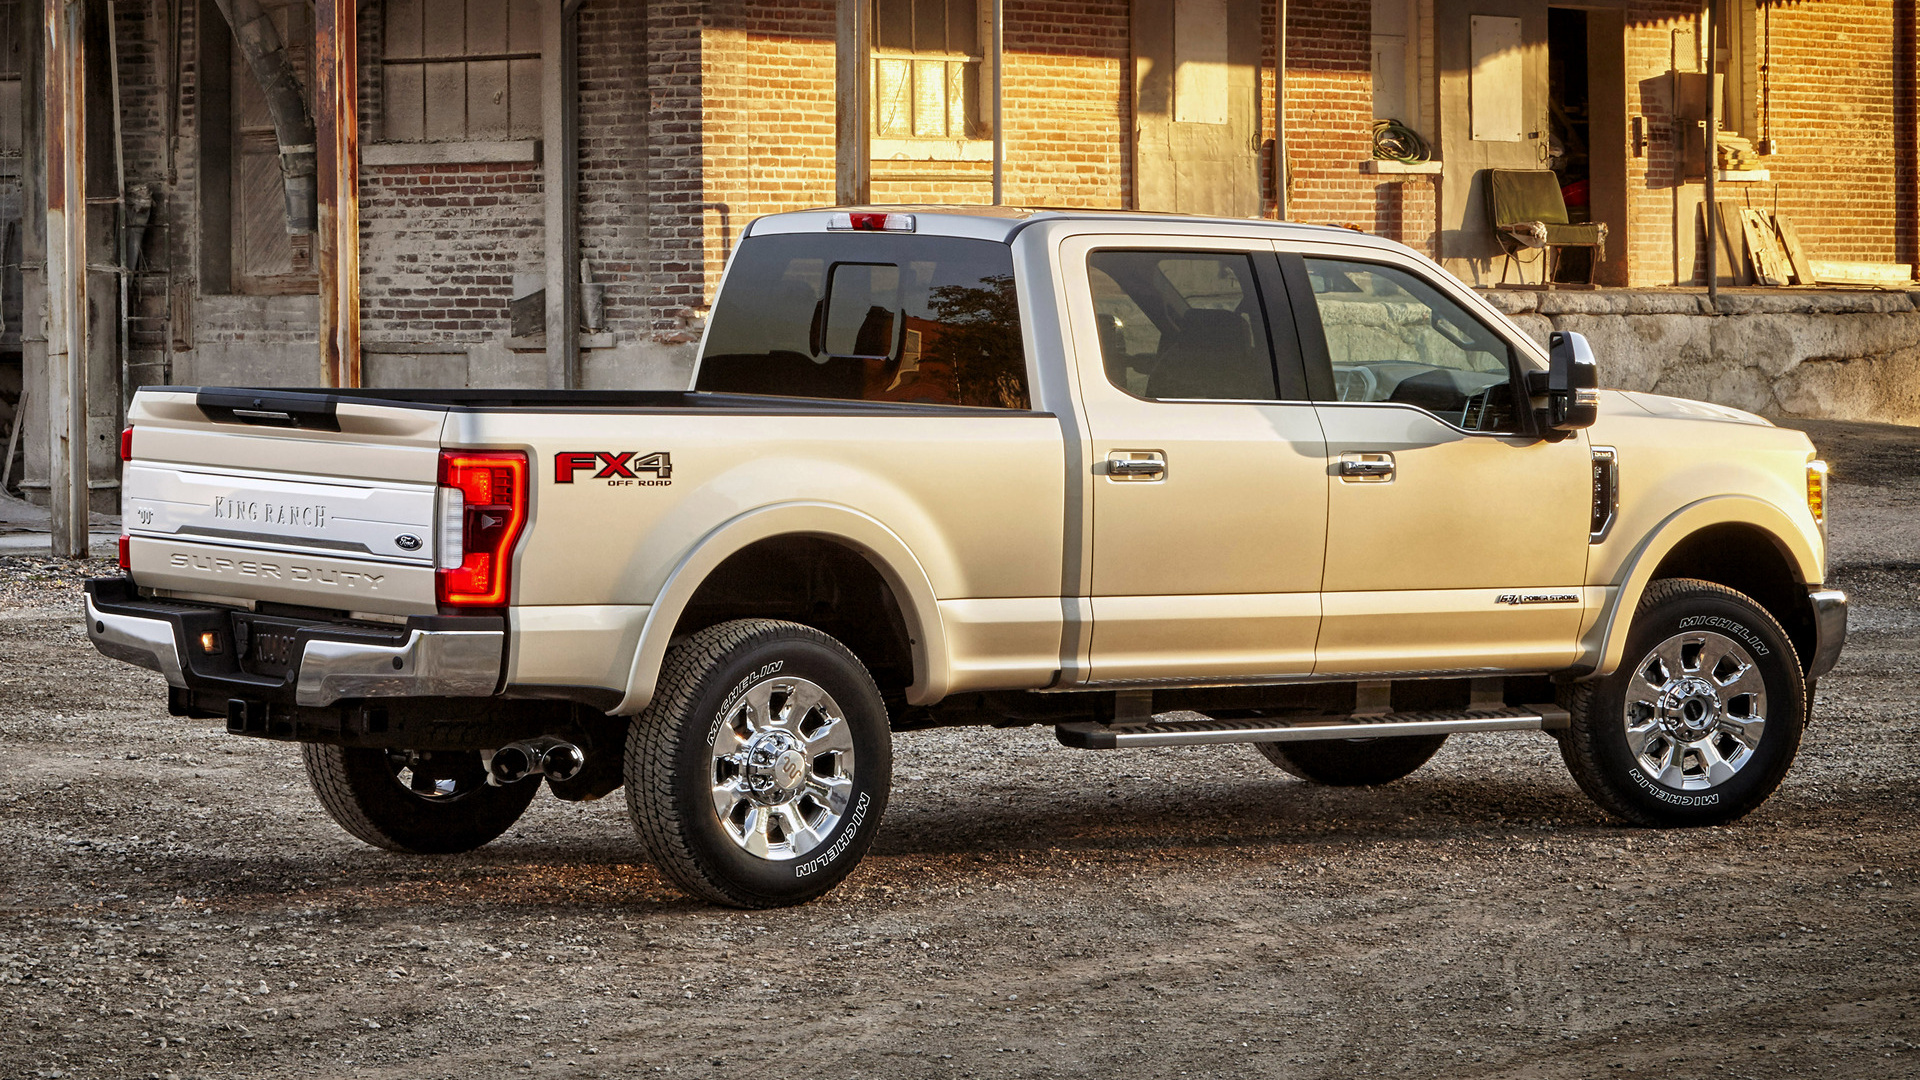 Ford F King Ranch Fx Crew Cab  Wallpapers And Hd Images